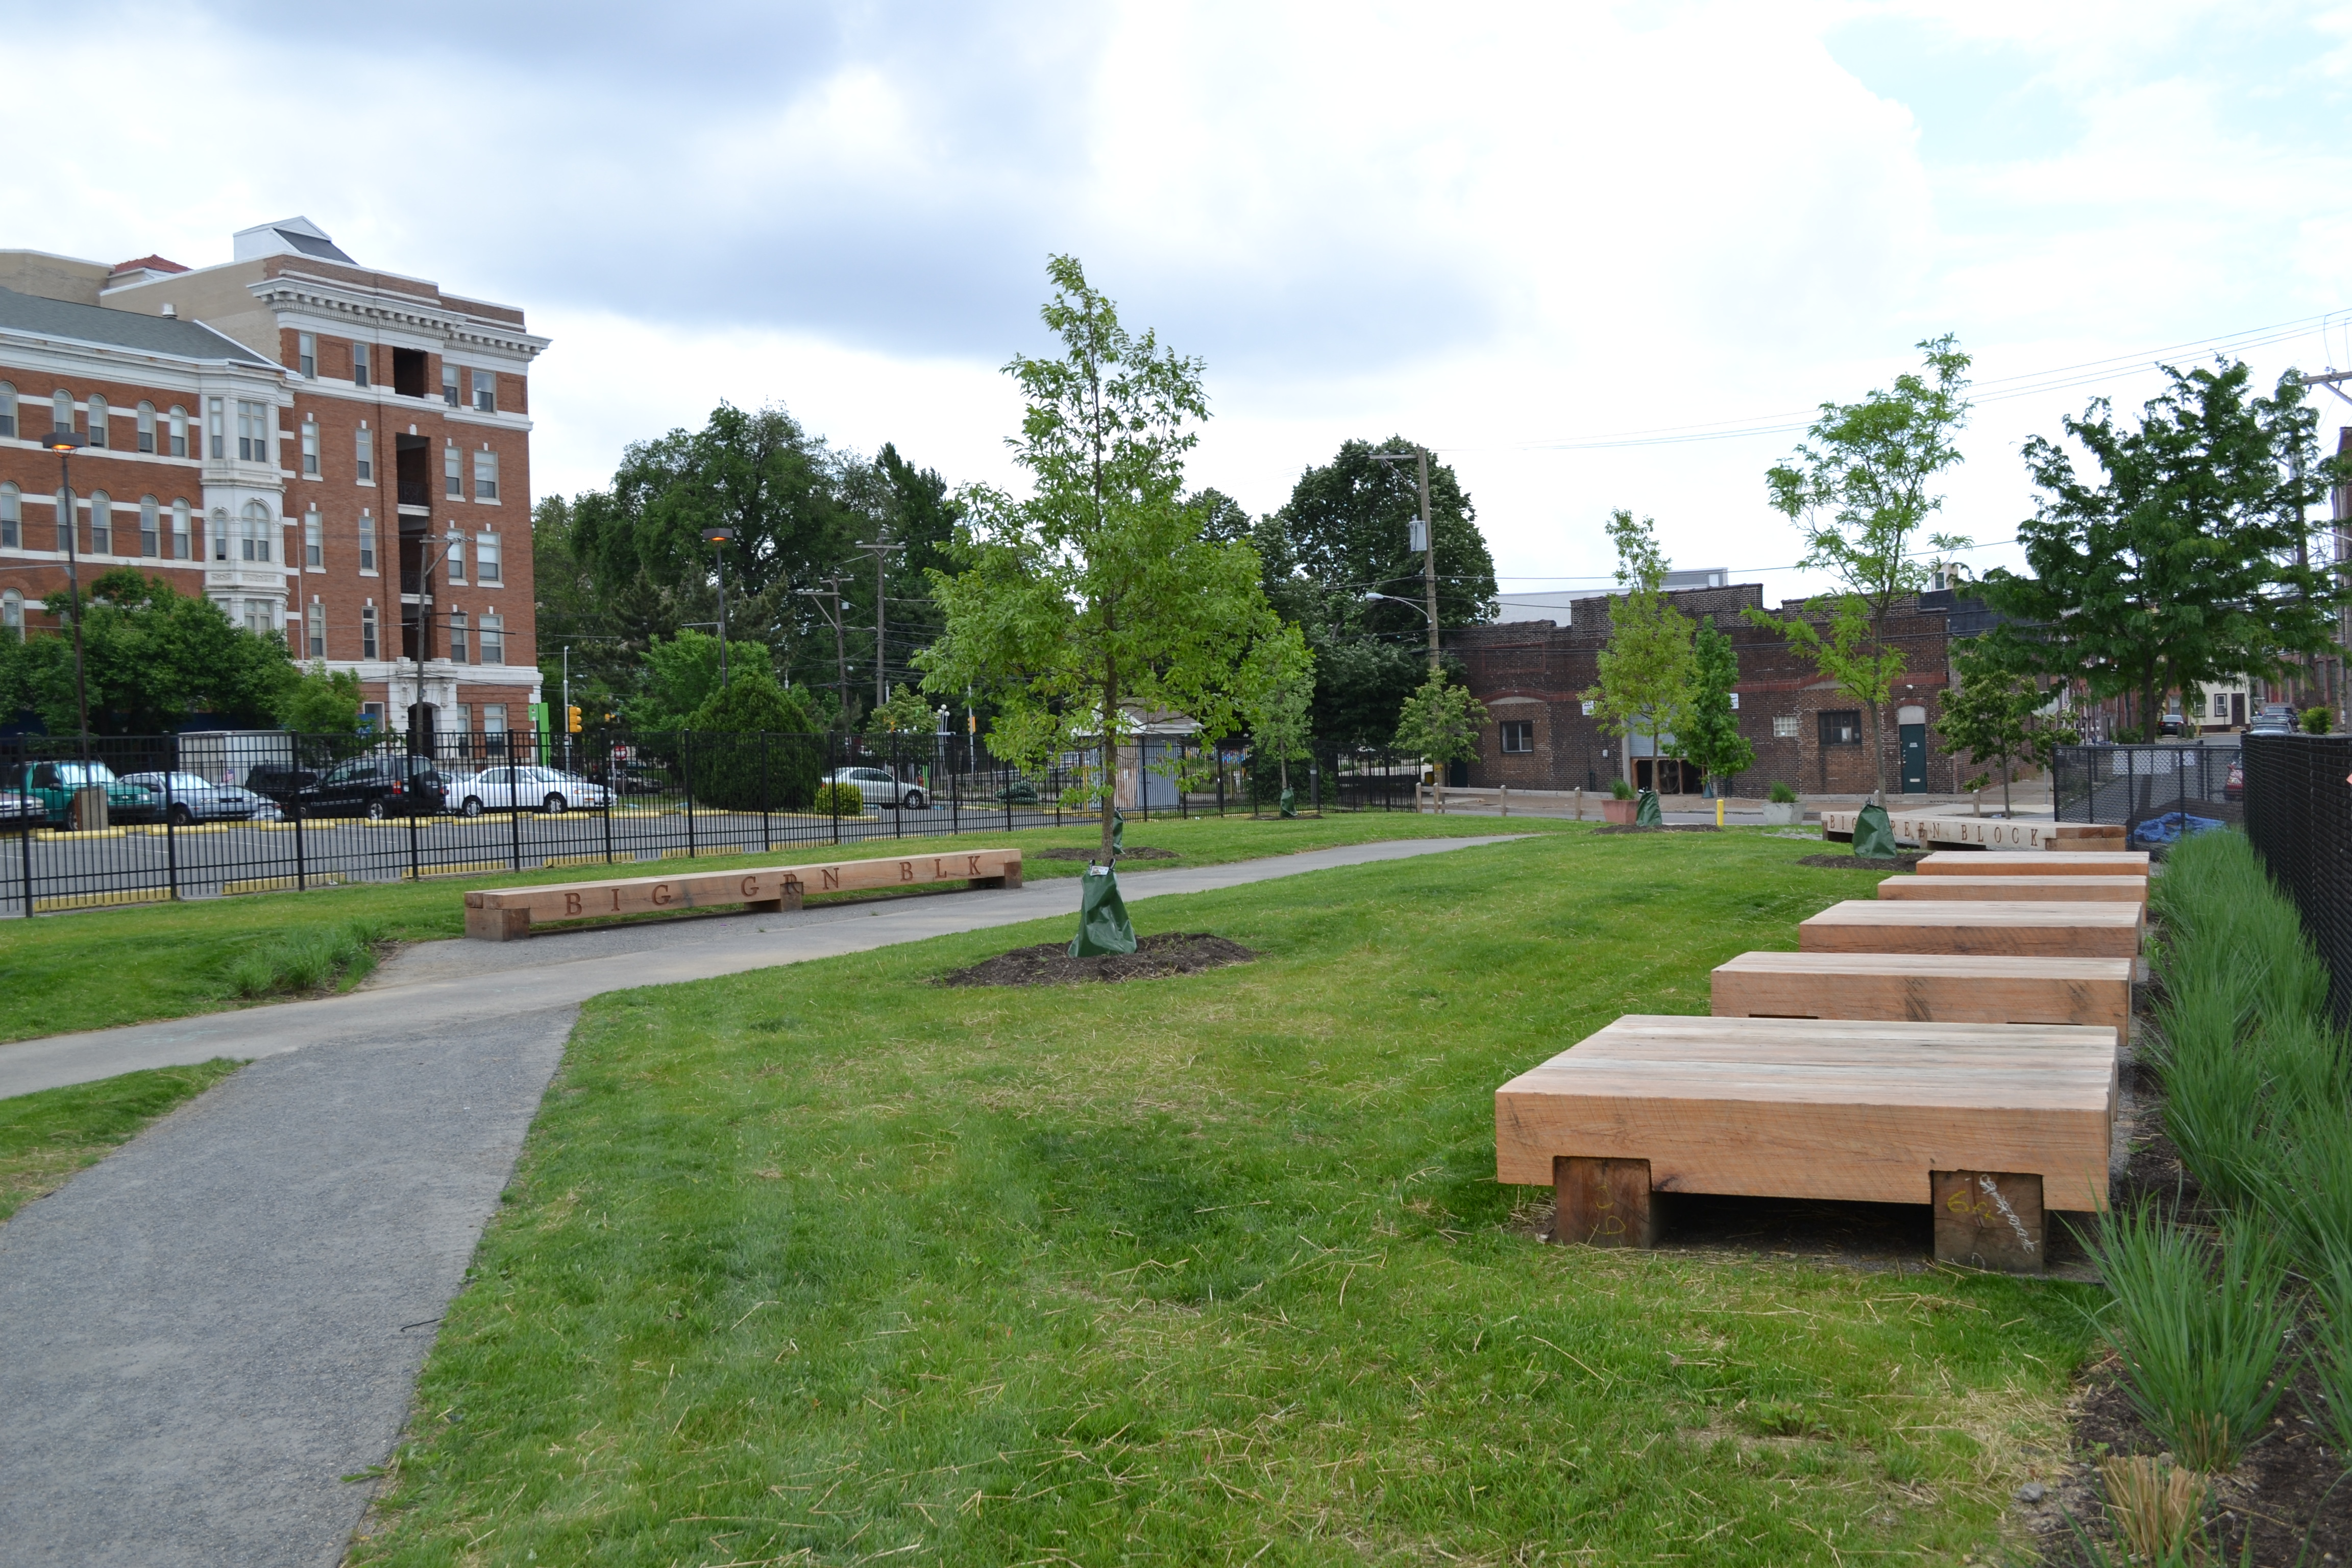 The Big Green Block initiative has created an art-filled greenspace to connect the Shissler Rec Center through neighborhood parks to the Delaware River